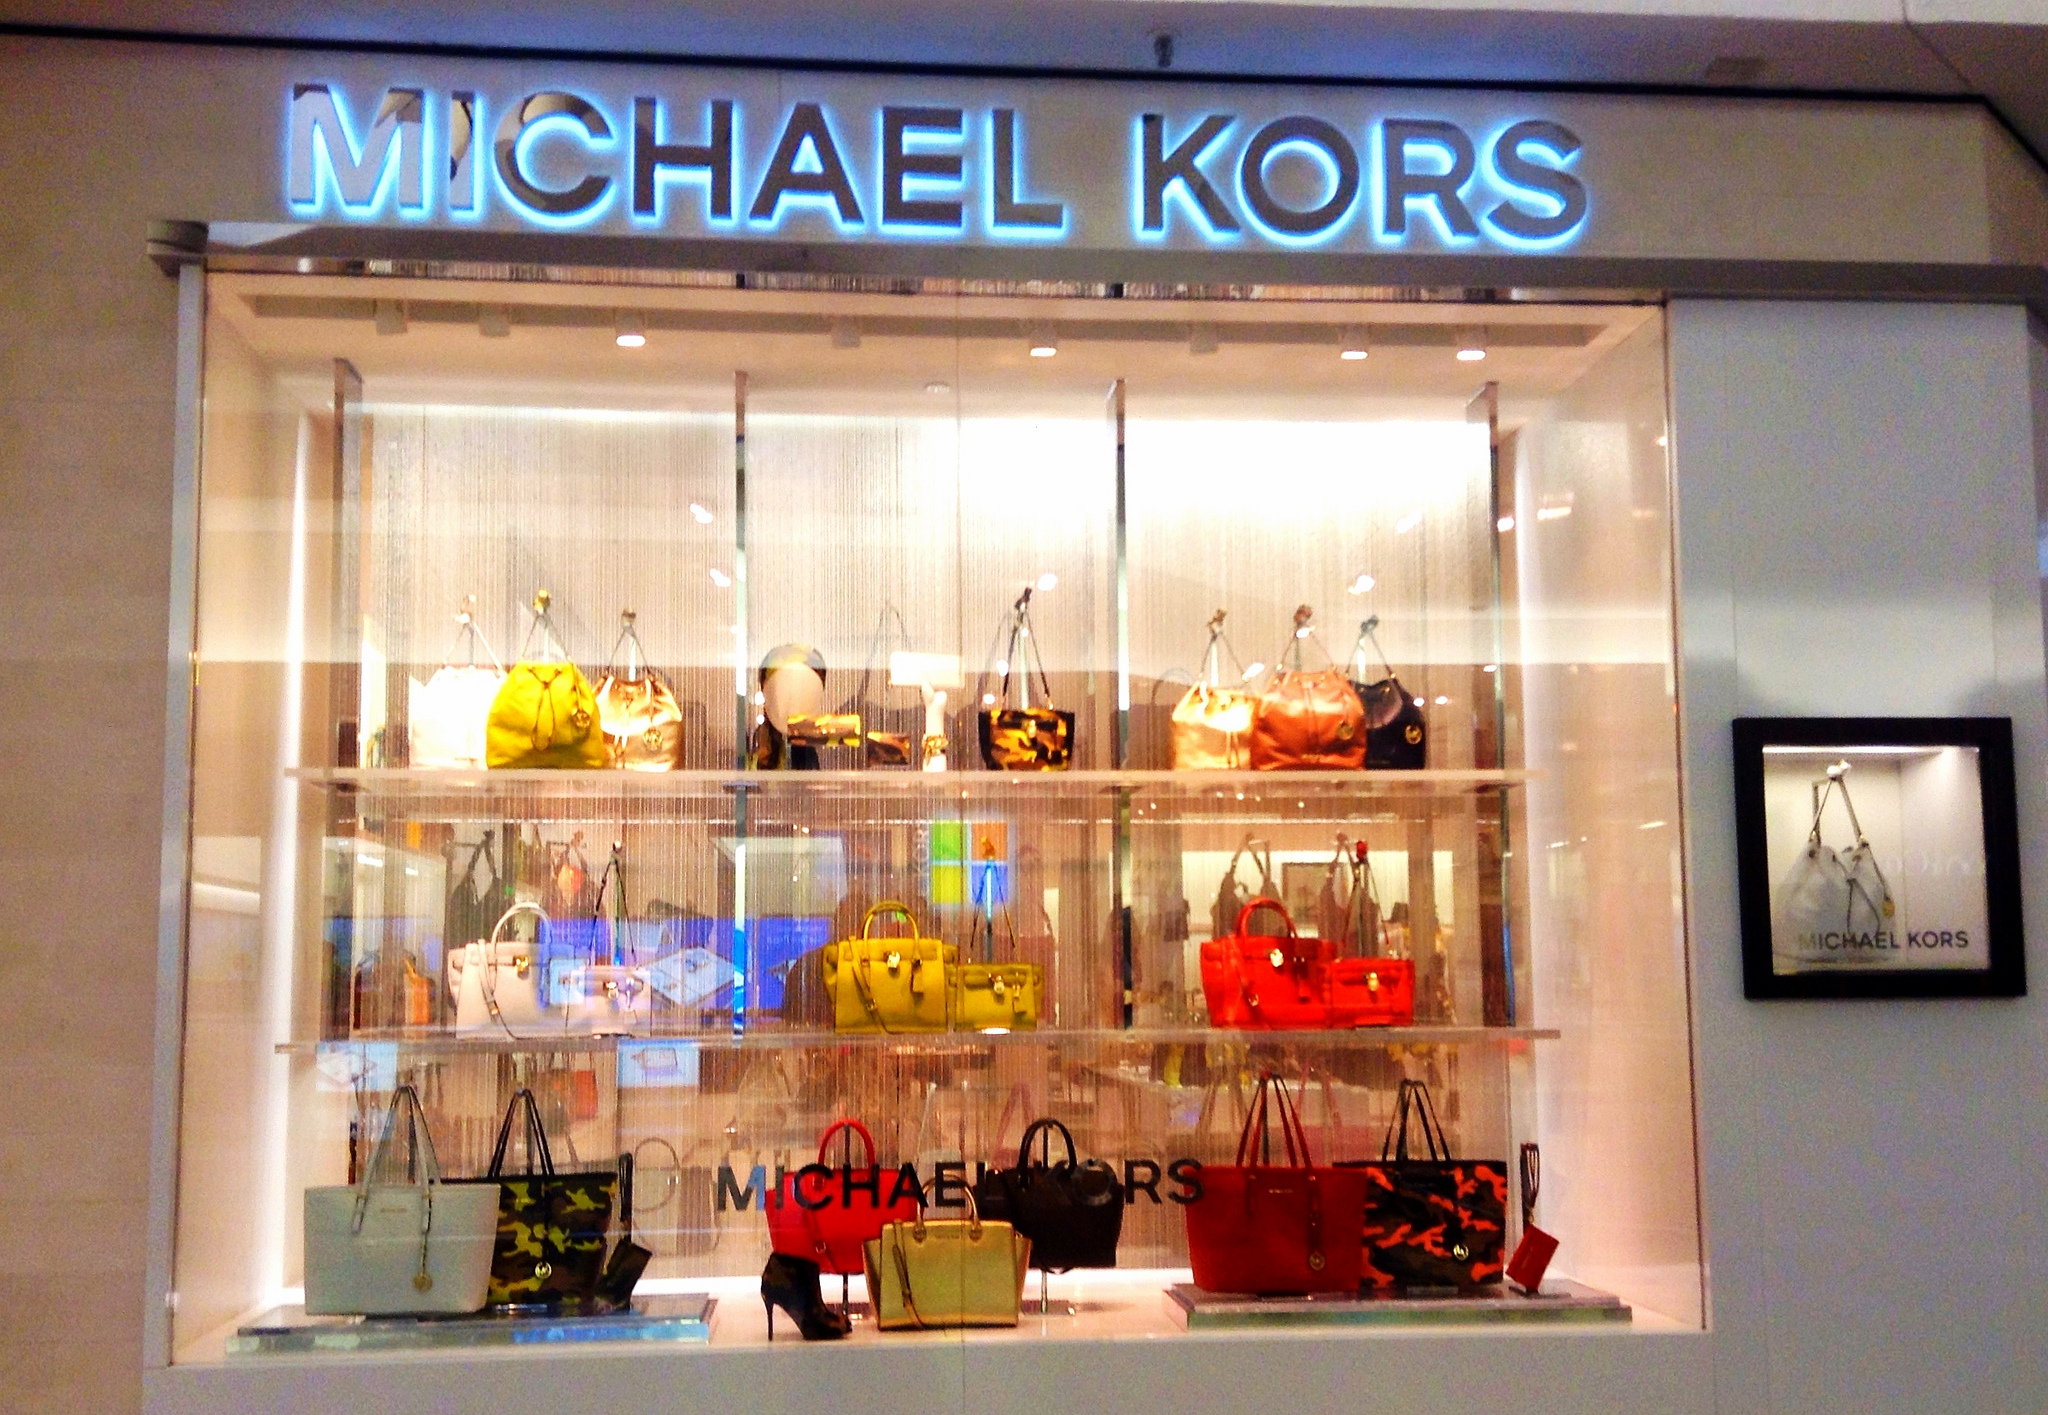 Michael Kors Settles Class Action Over Imaginary Outlet Prices – Consumerist b0c566bfafd6